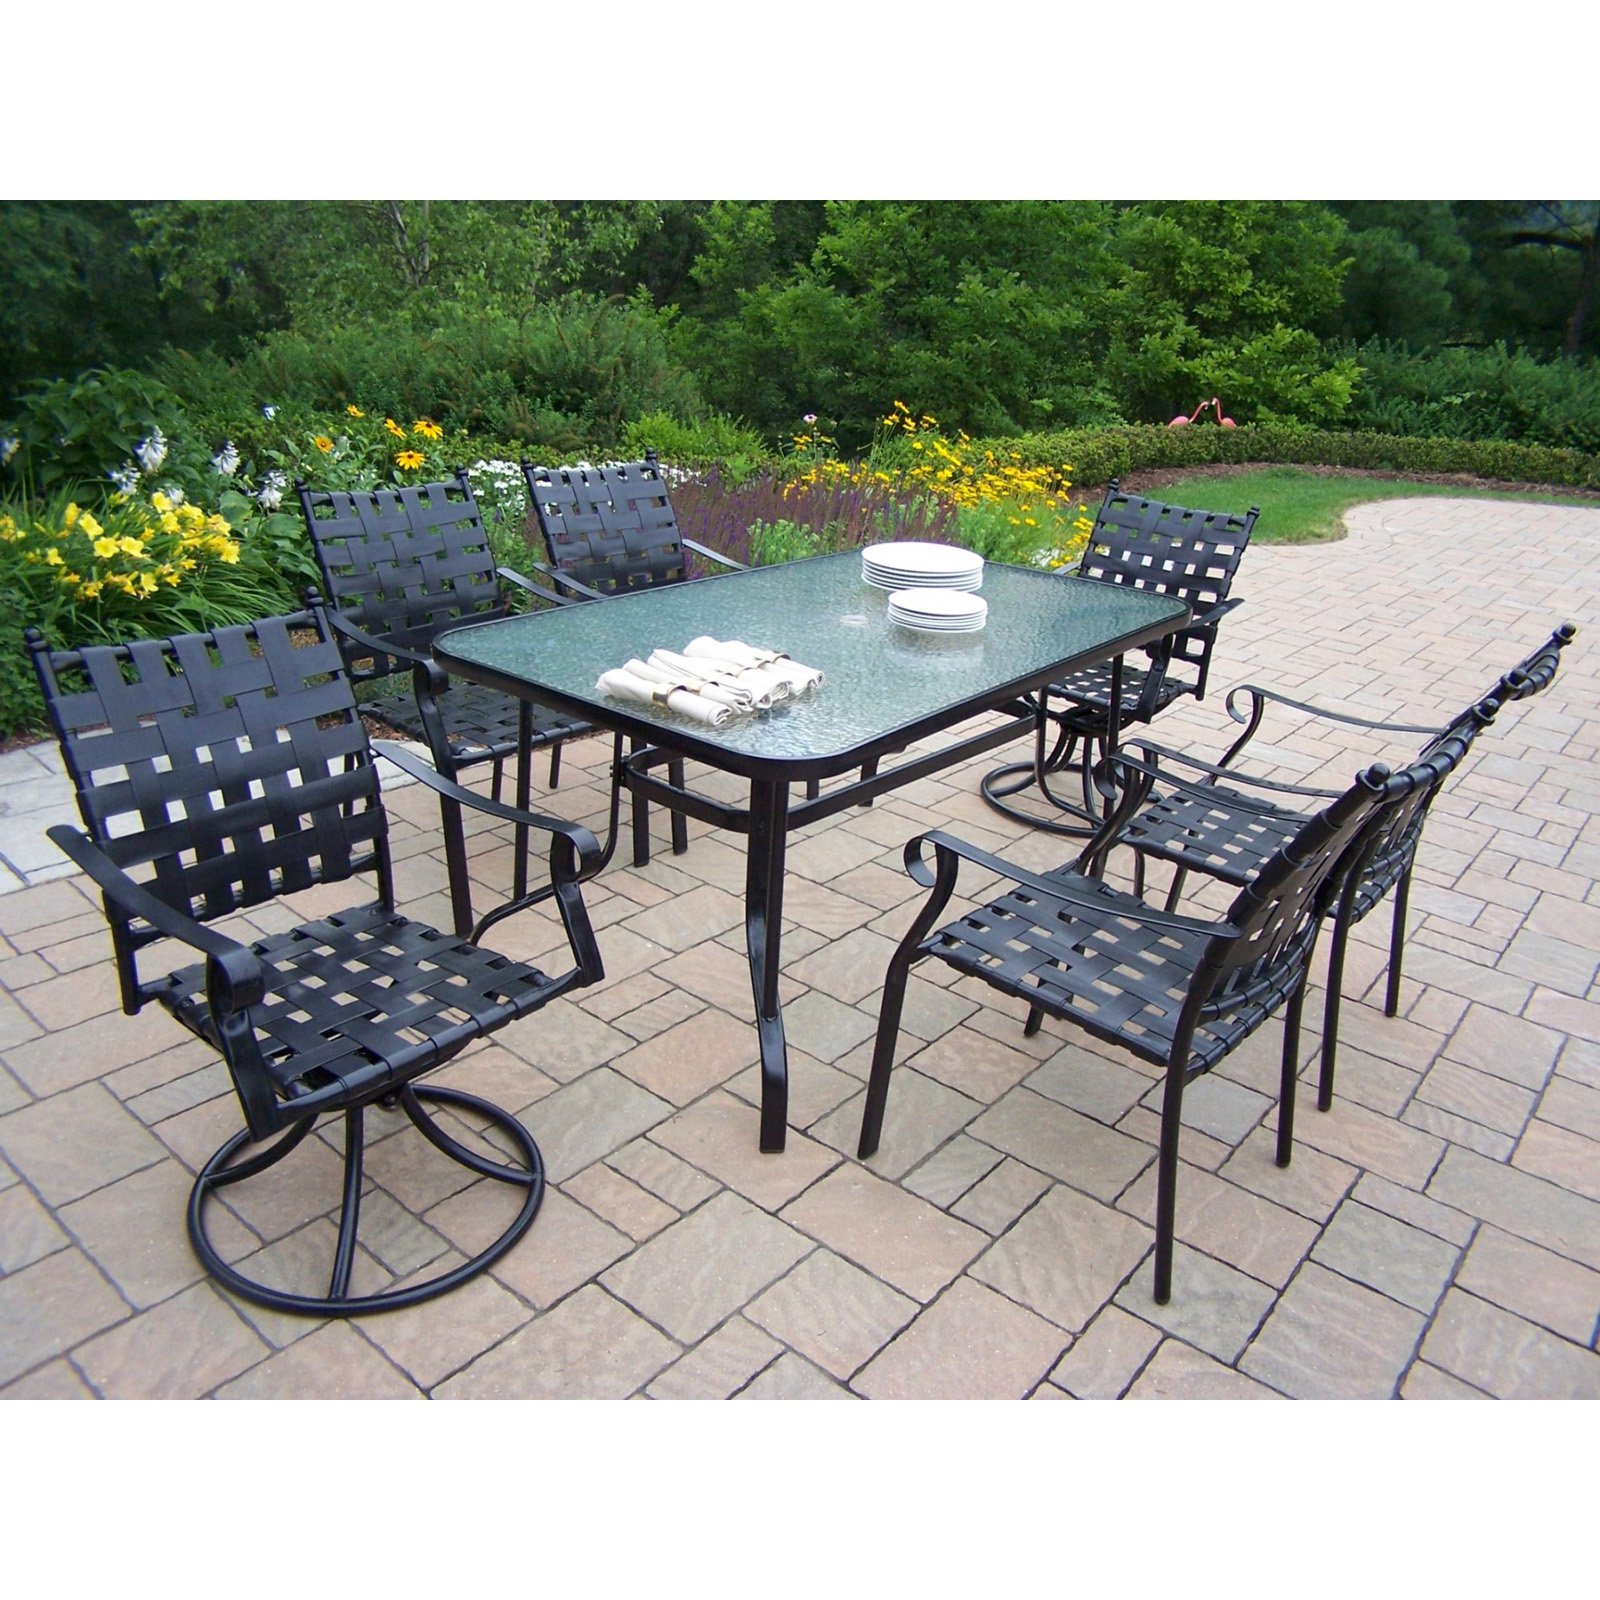 Oakland Living Web Patio Dining Set - Seats 6